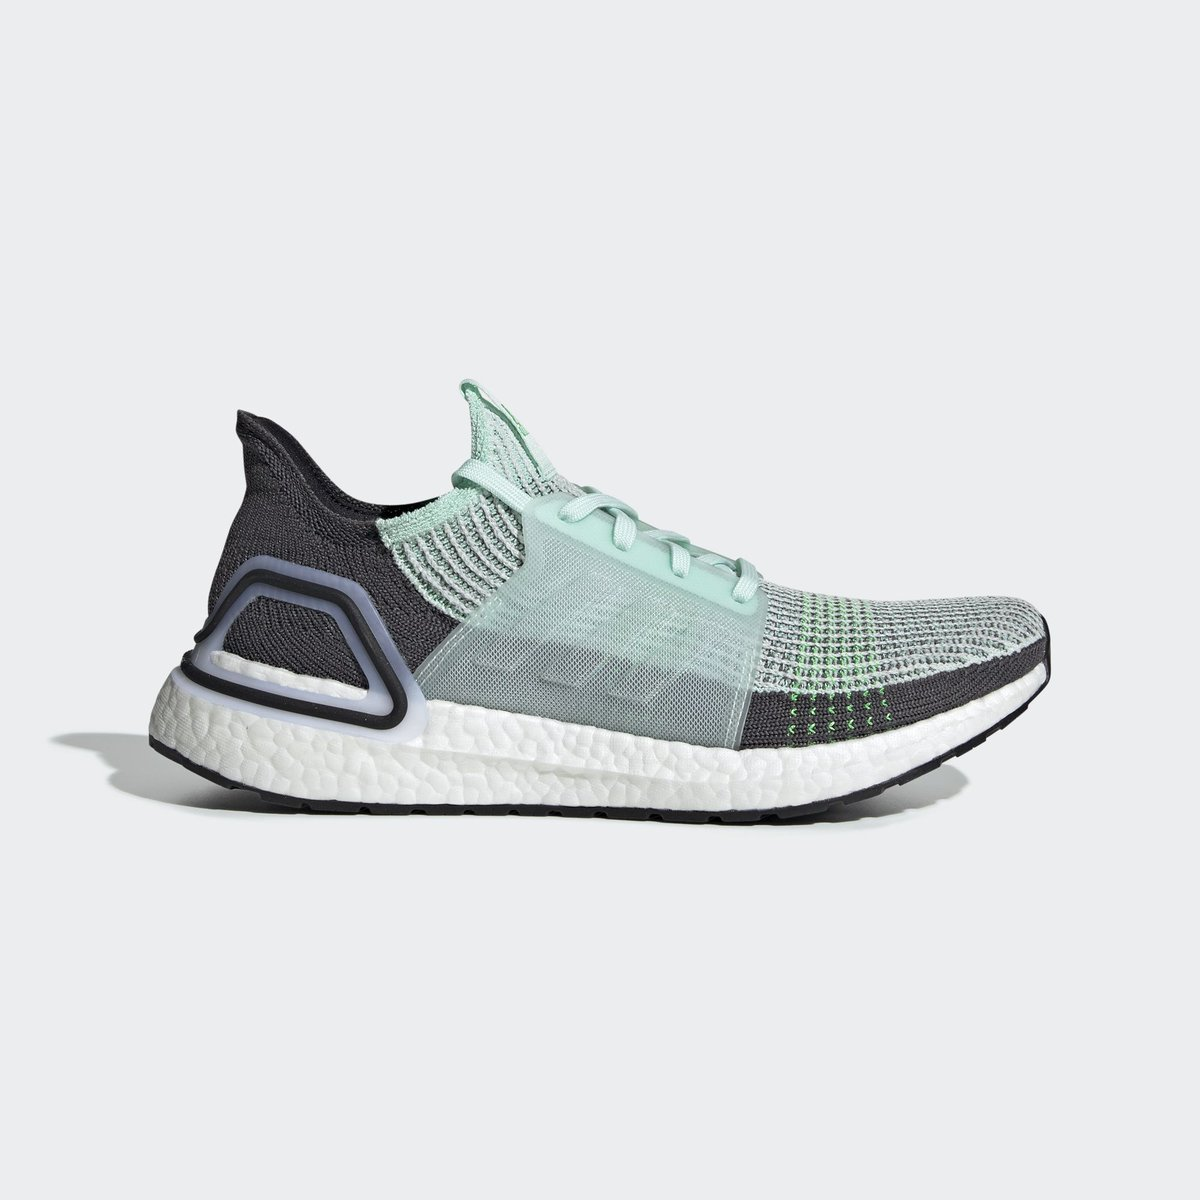 dea6841df0d31 Under retail on  SSENSE. adidas  UltraBOOST19 Ice Mint. Retail  180. Now   153 shipped. Use code SHOP15 at checkout.